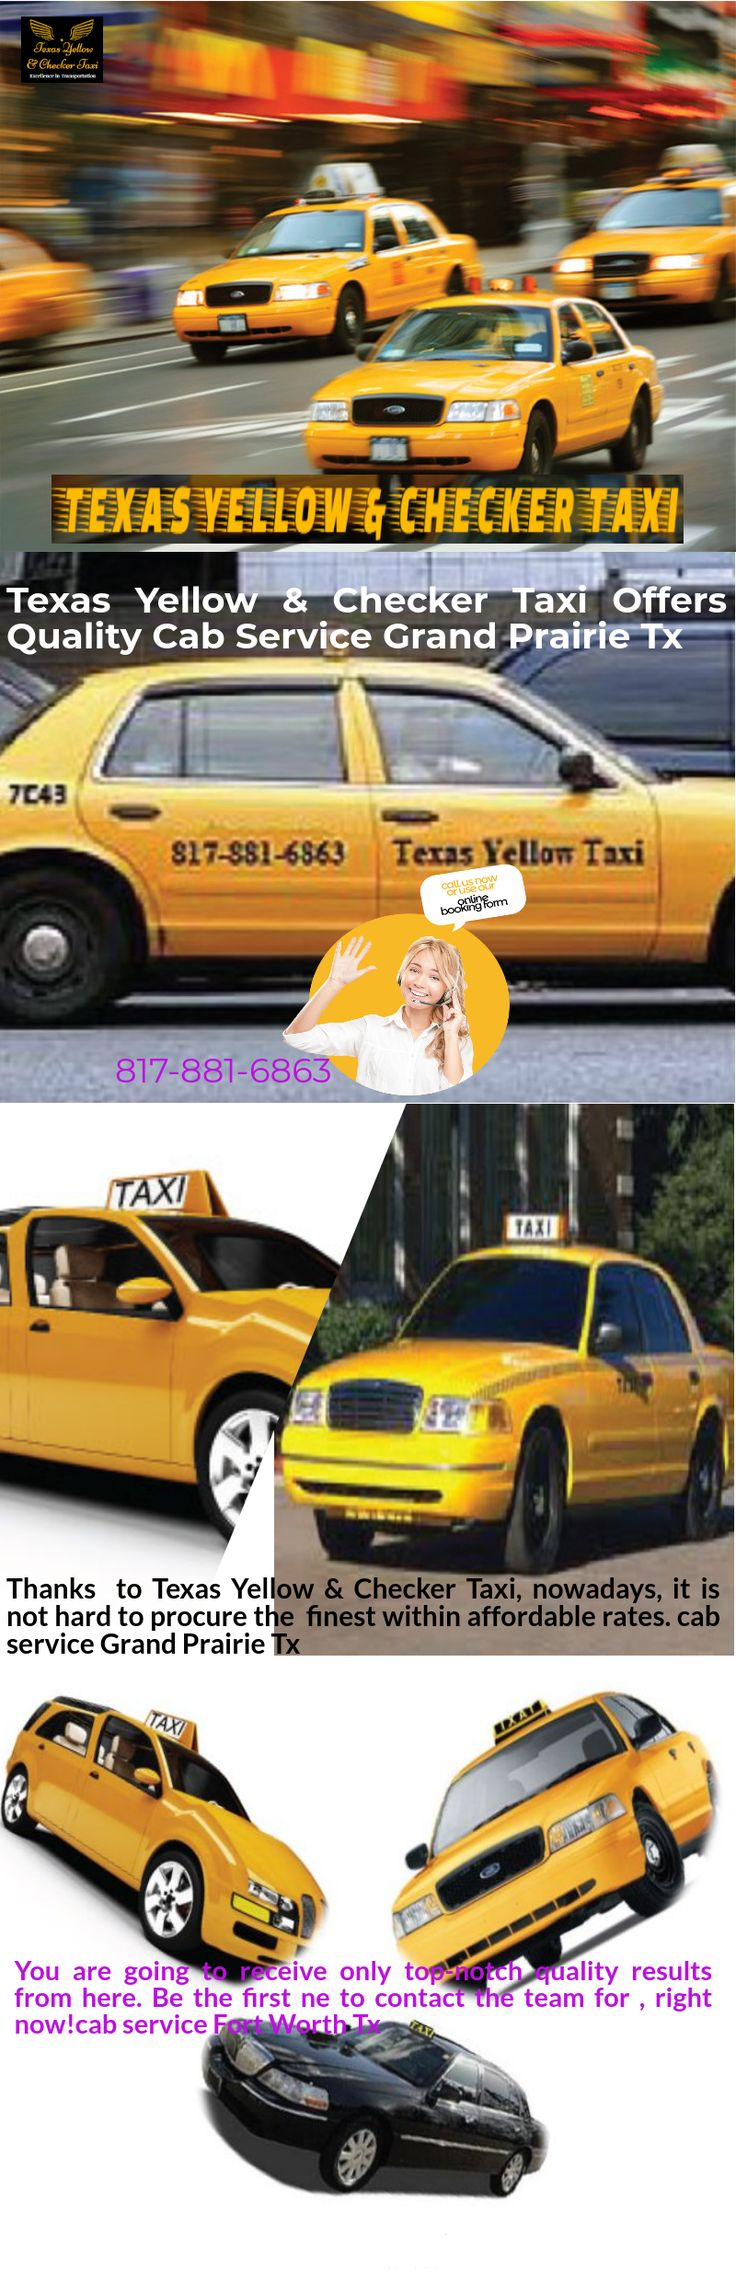 Avail your transfer needs with the best Taxi Cab Service Granbury TX available. Texas Yellow & Checker Taxi will provide you with a reliable Taxi Services Godley TX. For a smooth and non-stressful ride, hiring Texas Yellow & Checker Taxi is the best thing you can do.